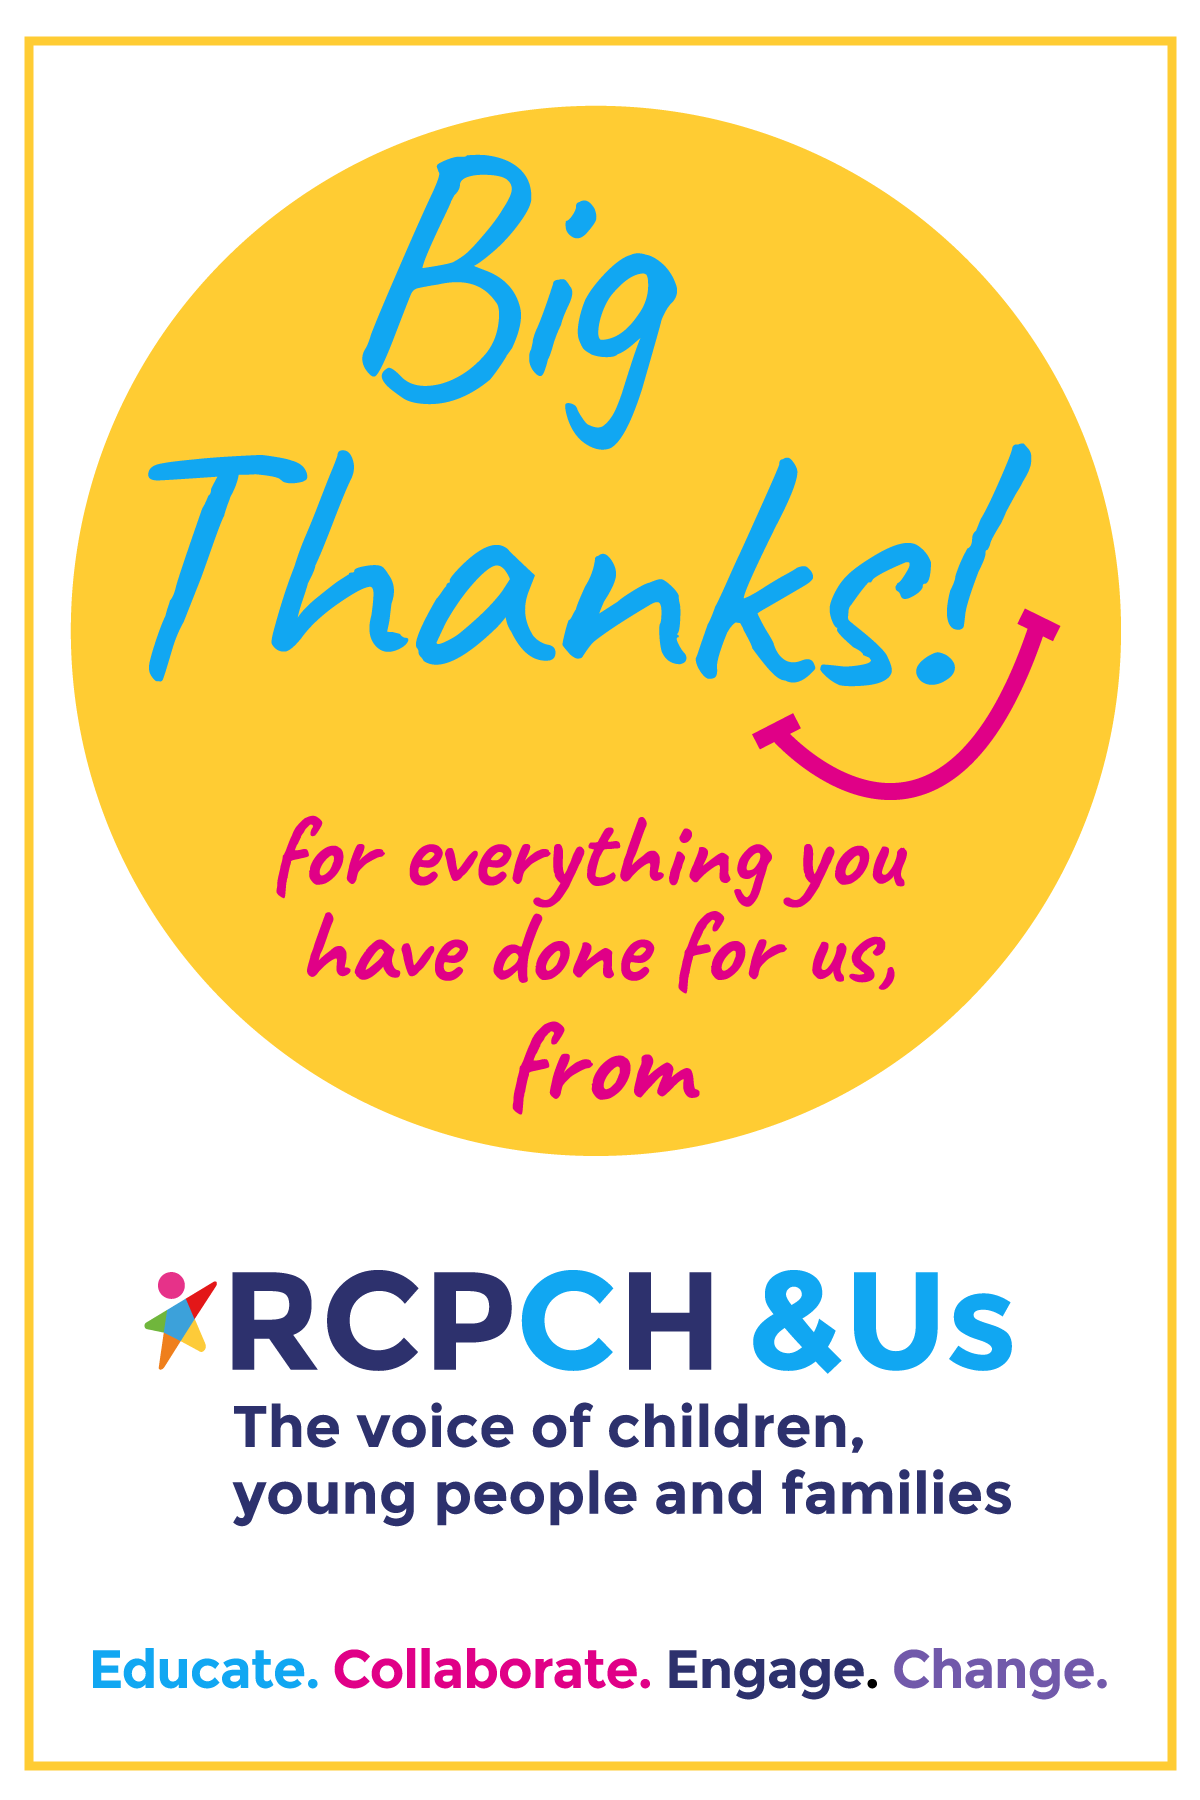 Bog thanks! for everything you have done for us - from RCPCH &Us